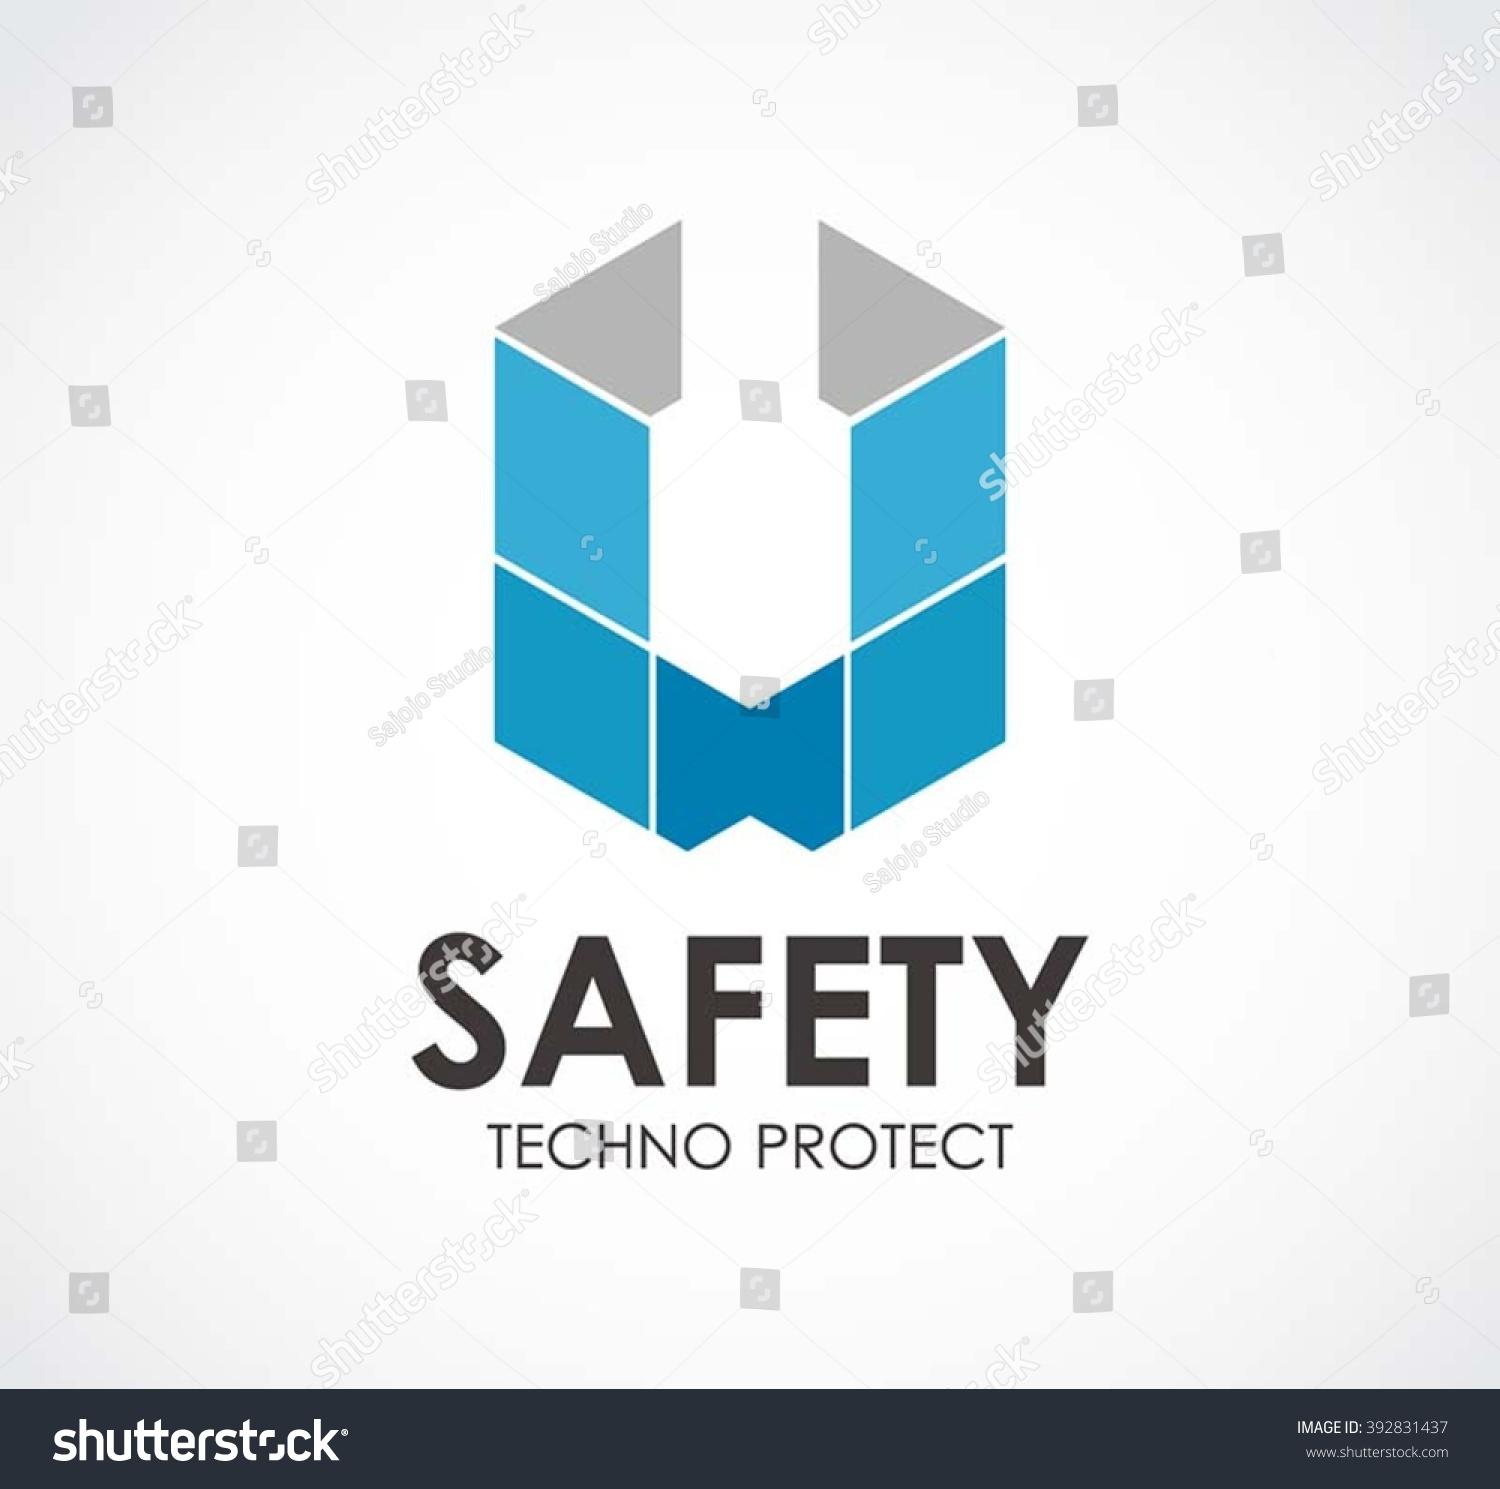 Safety Ribbon Of Shield Technology Abstract Vector And Logo Design Or Template Protection Business Icon